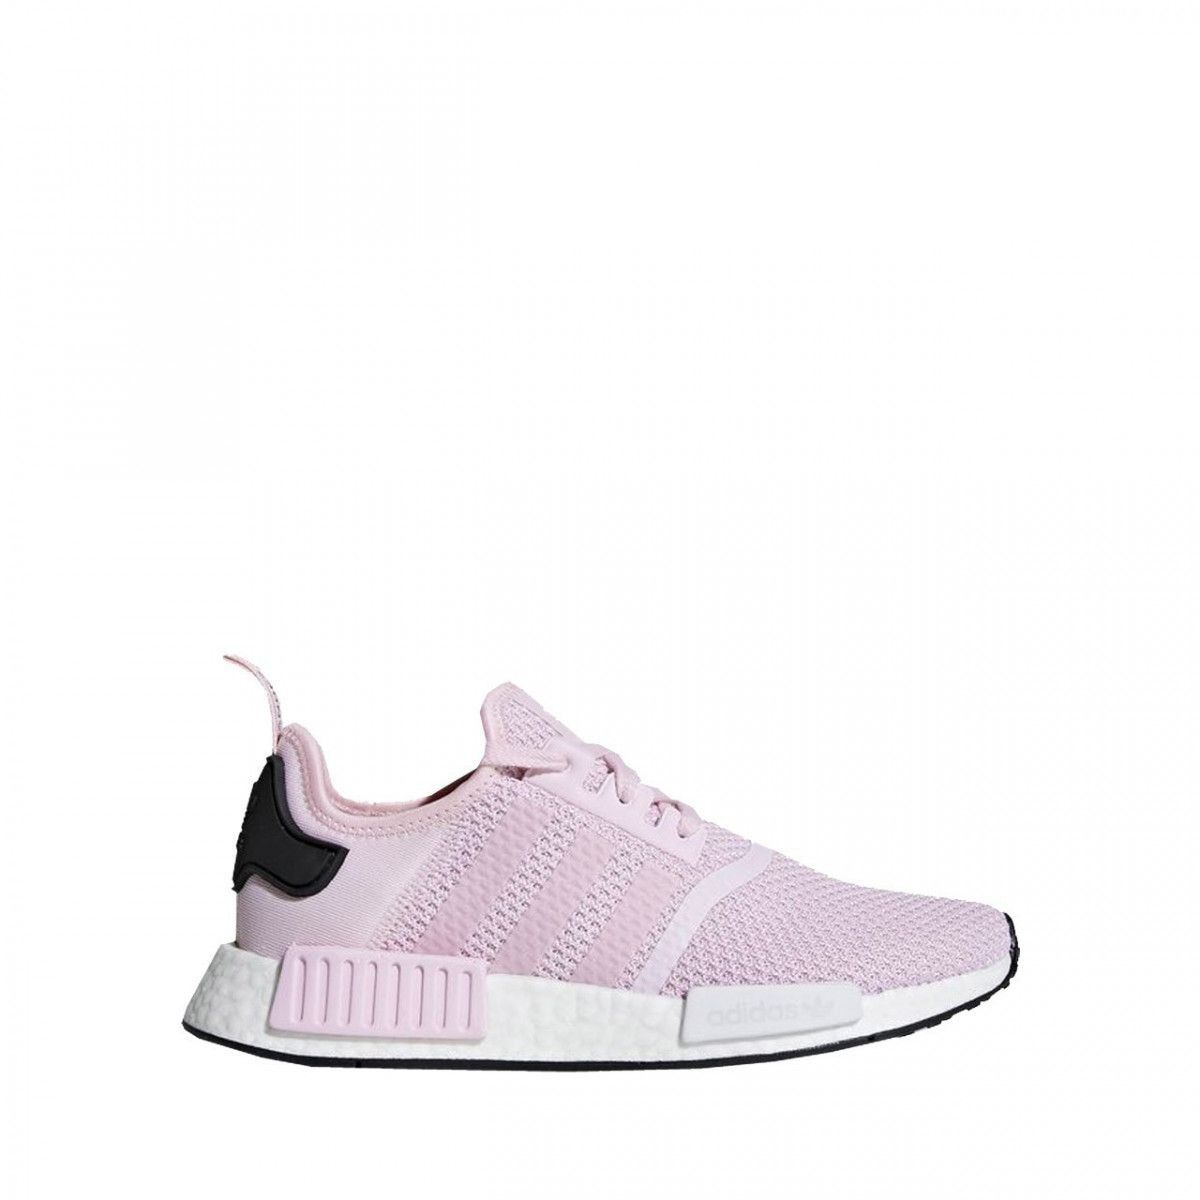 Chaussures Adidas Nmd R1 W Rose Taille : 36;37;38;39;40;41